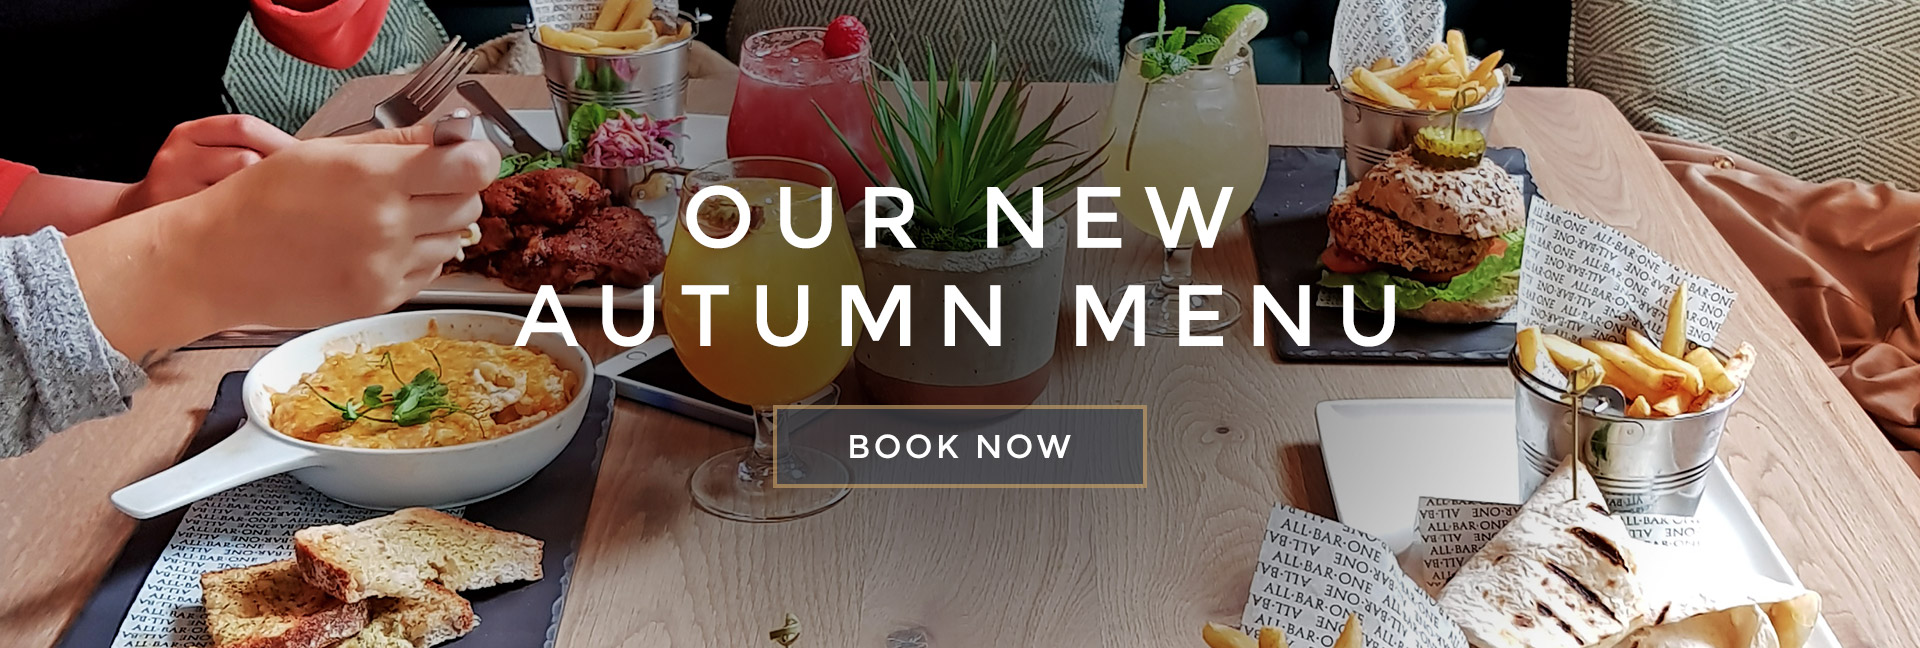 Our new Autumn menu at All Bar One Exchange Edinburgh - Book now